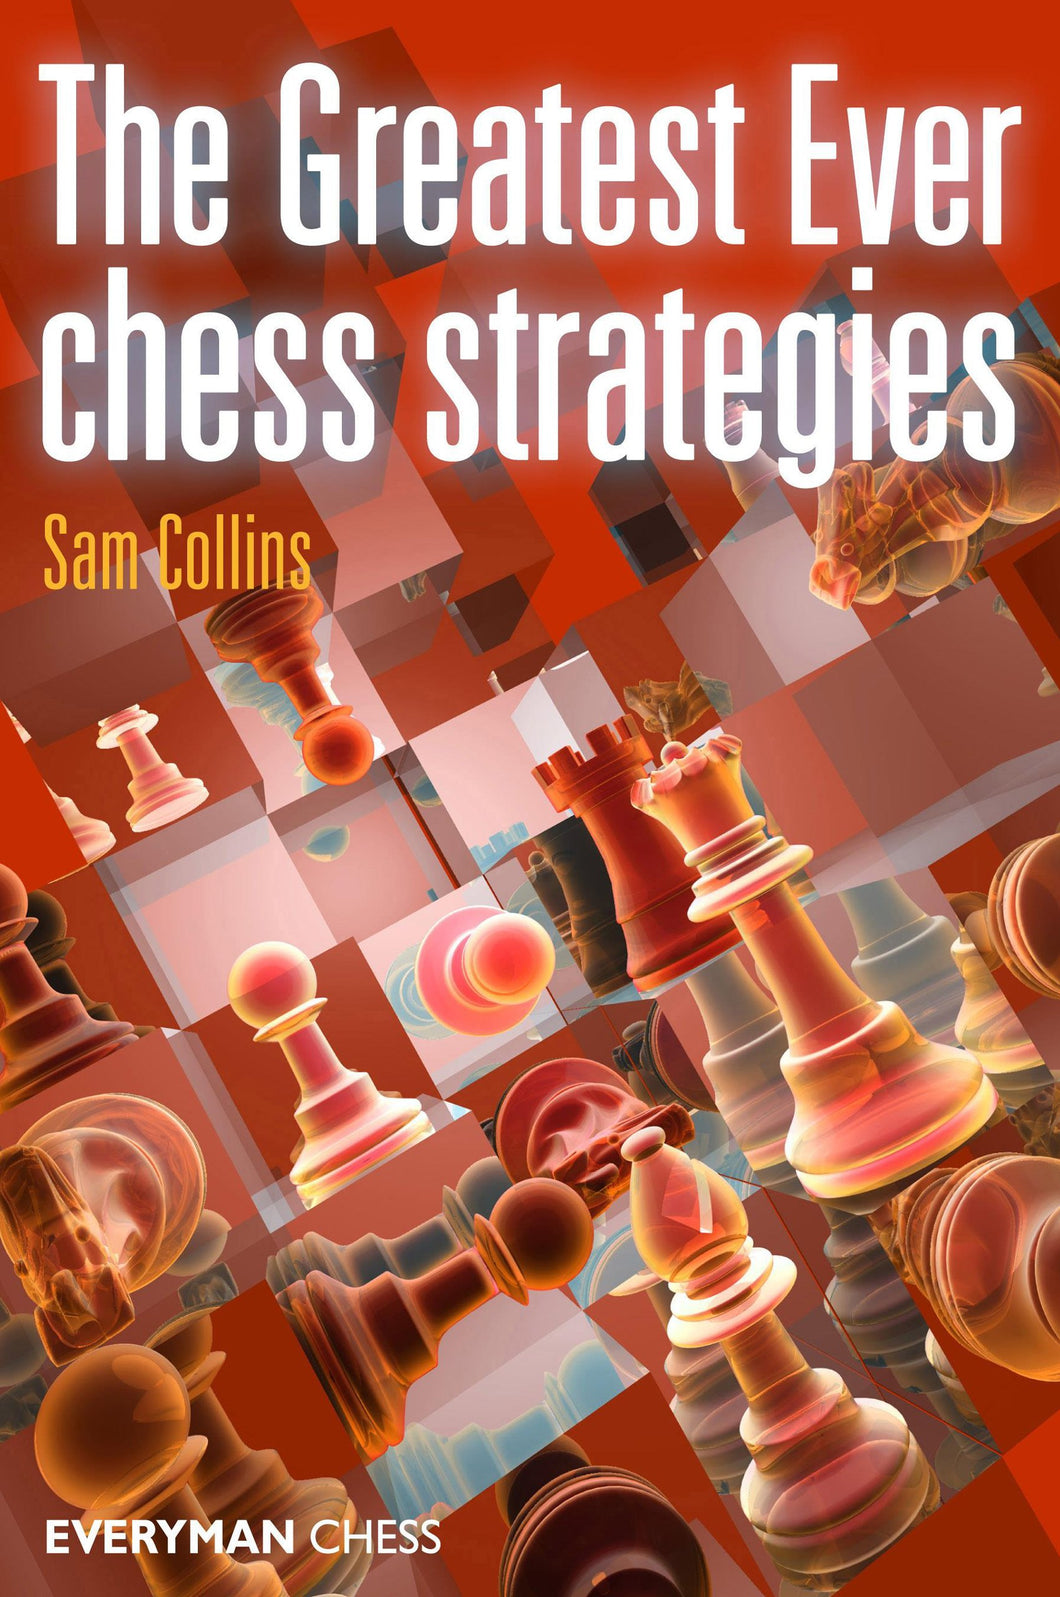 The Greatest Ever Chess Strategies front cover